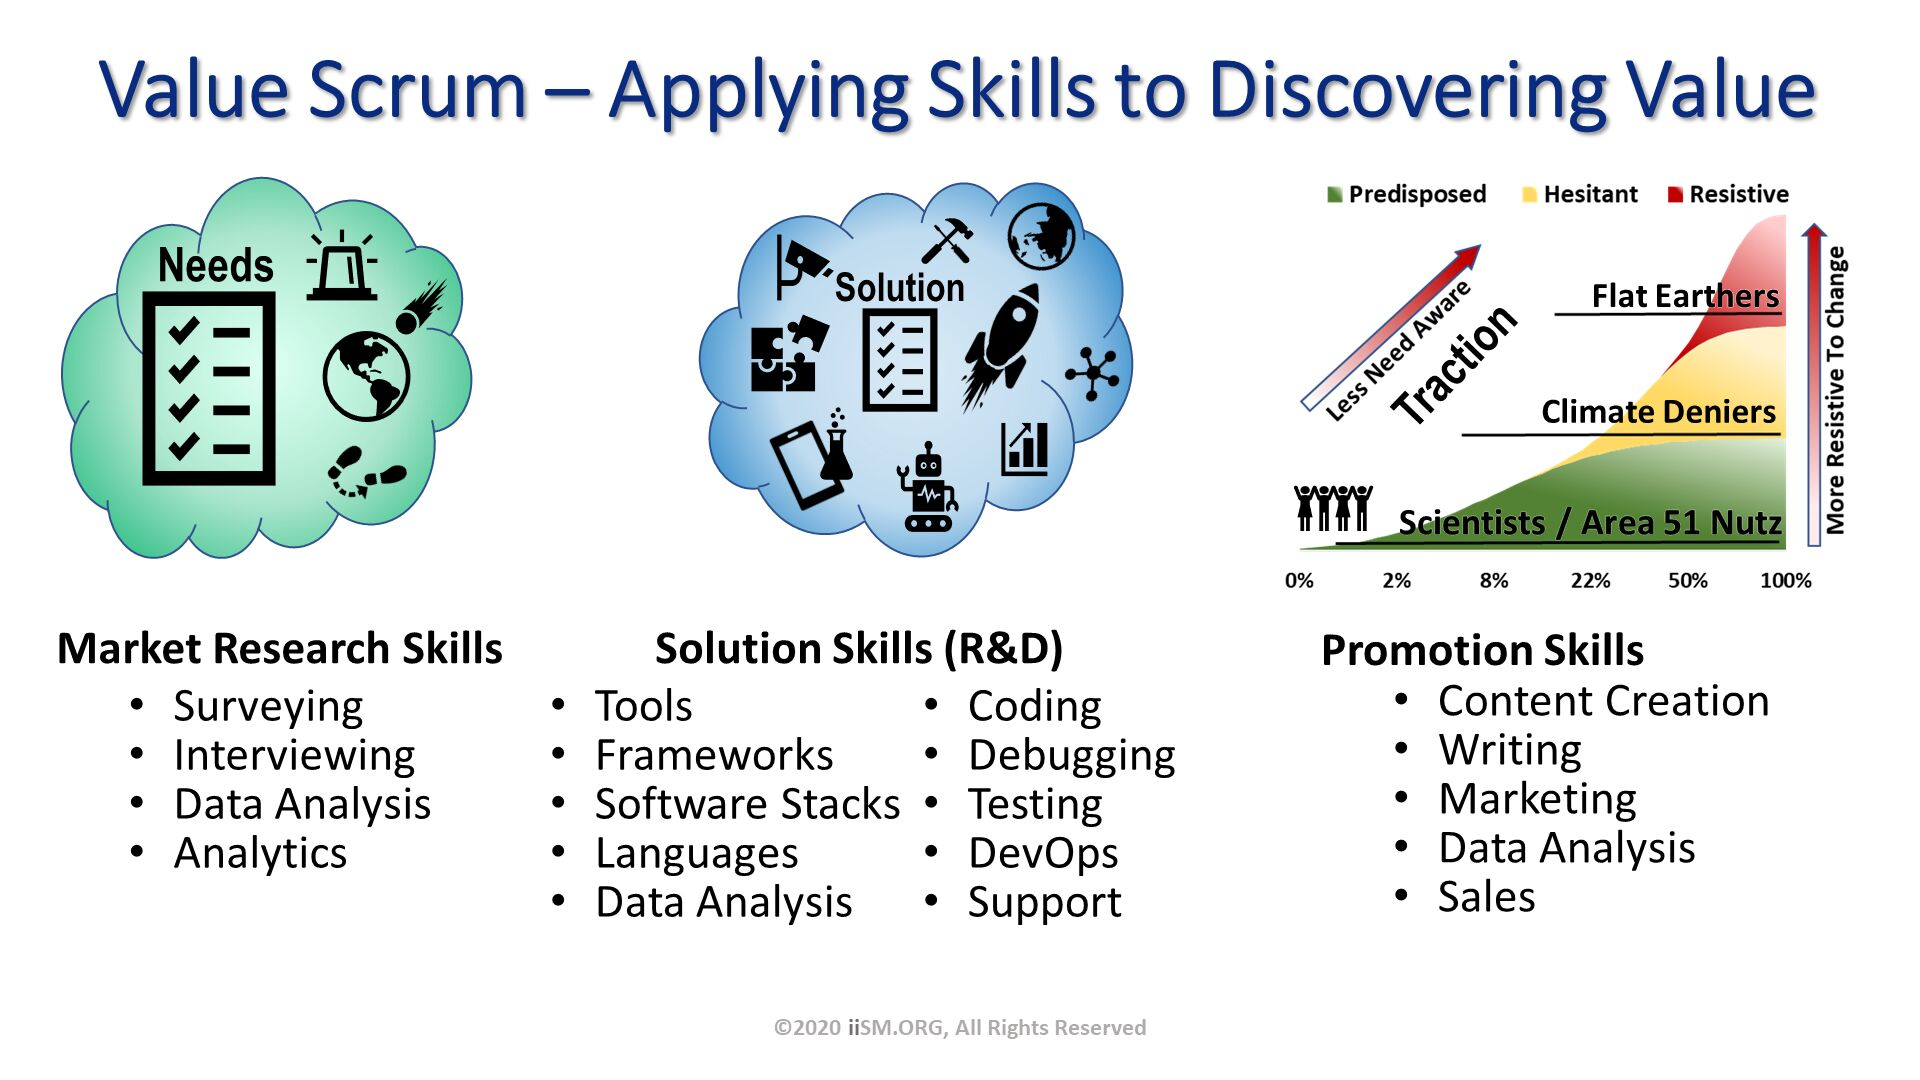 Value Scrum – Applying Skills to Discovering Value. ©2020 iiSM.ORG, All Rights Reserved.